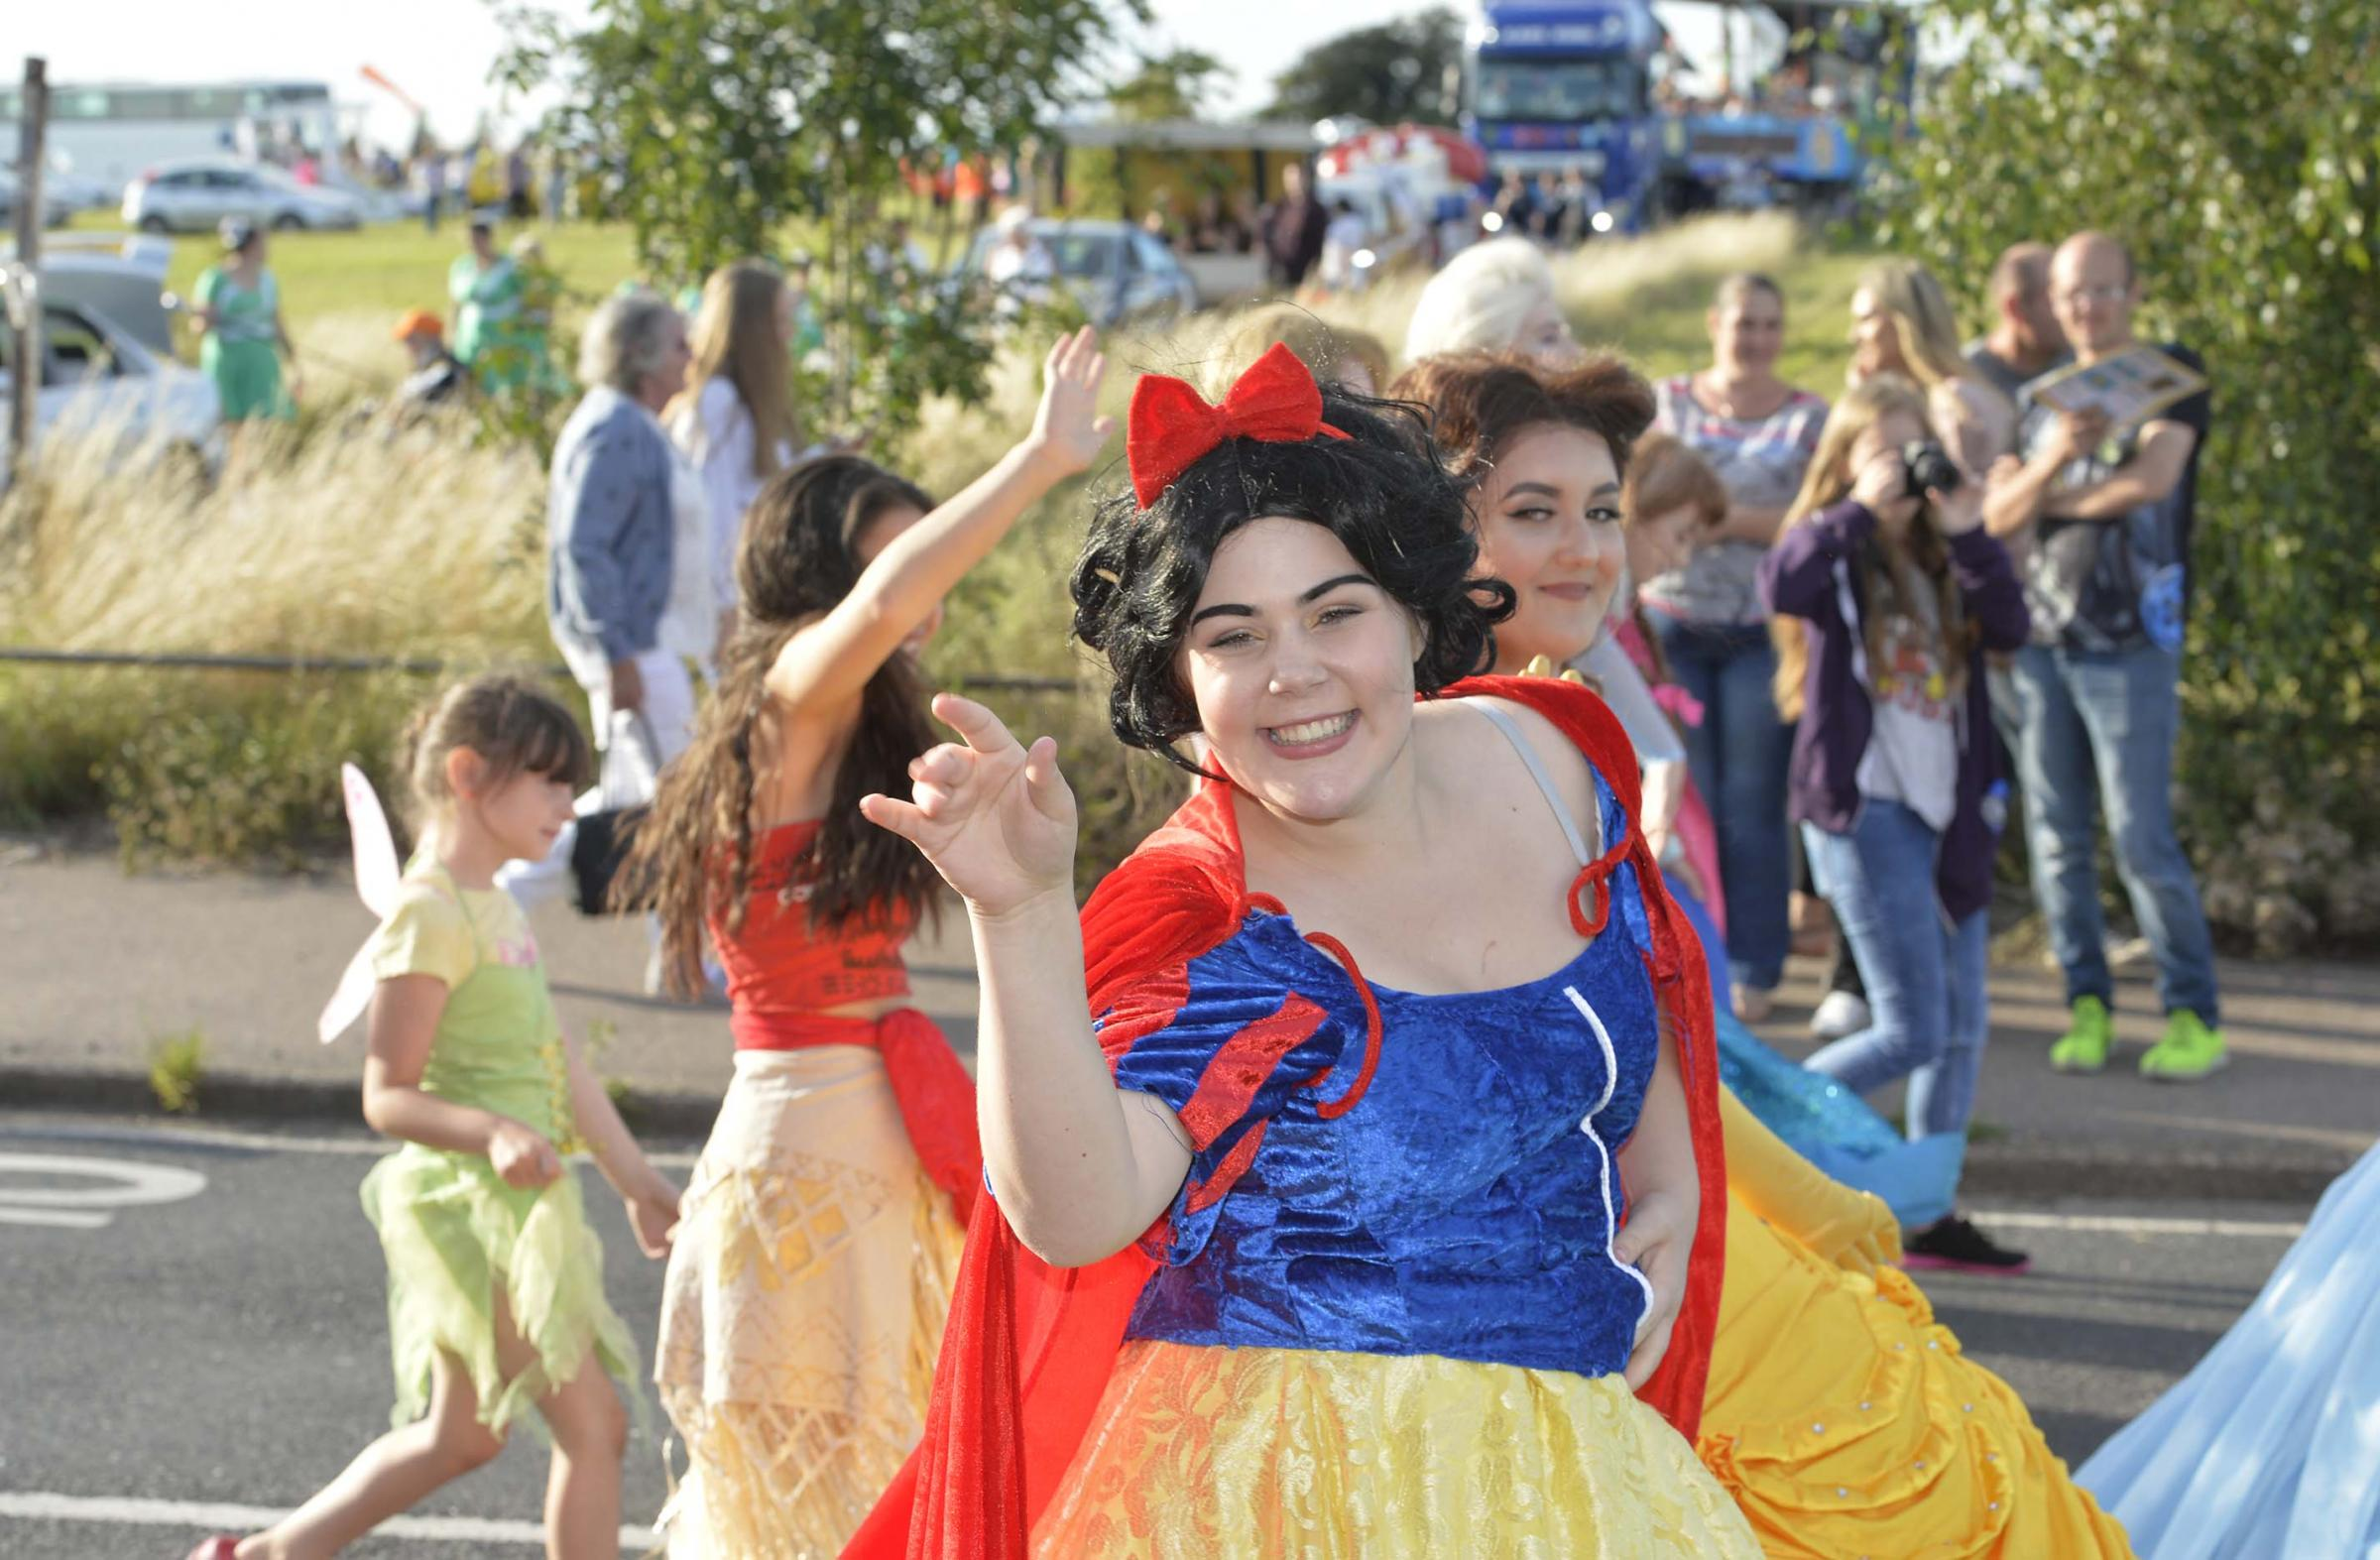 Plenty for both young and old during Clacton's Carnival week